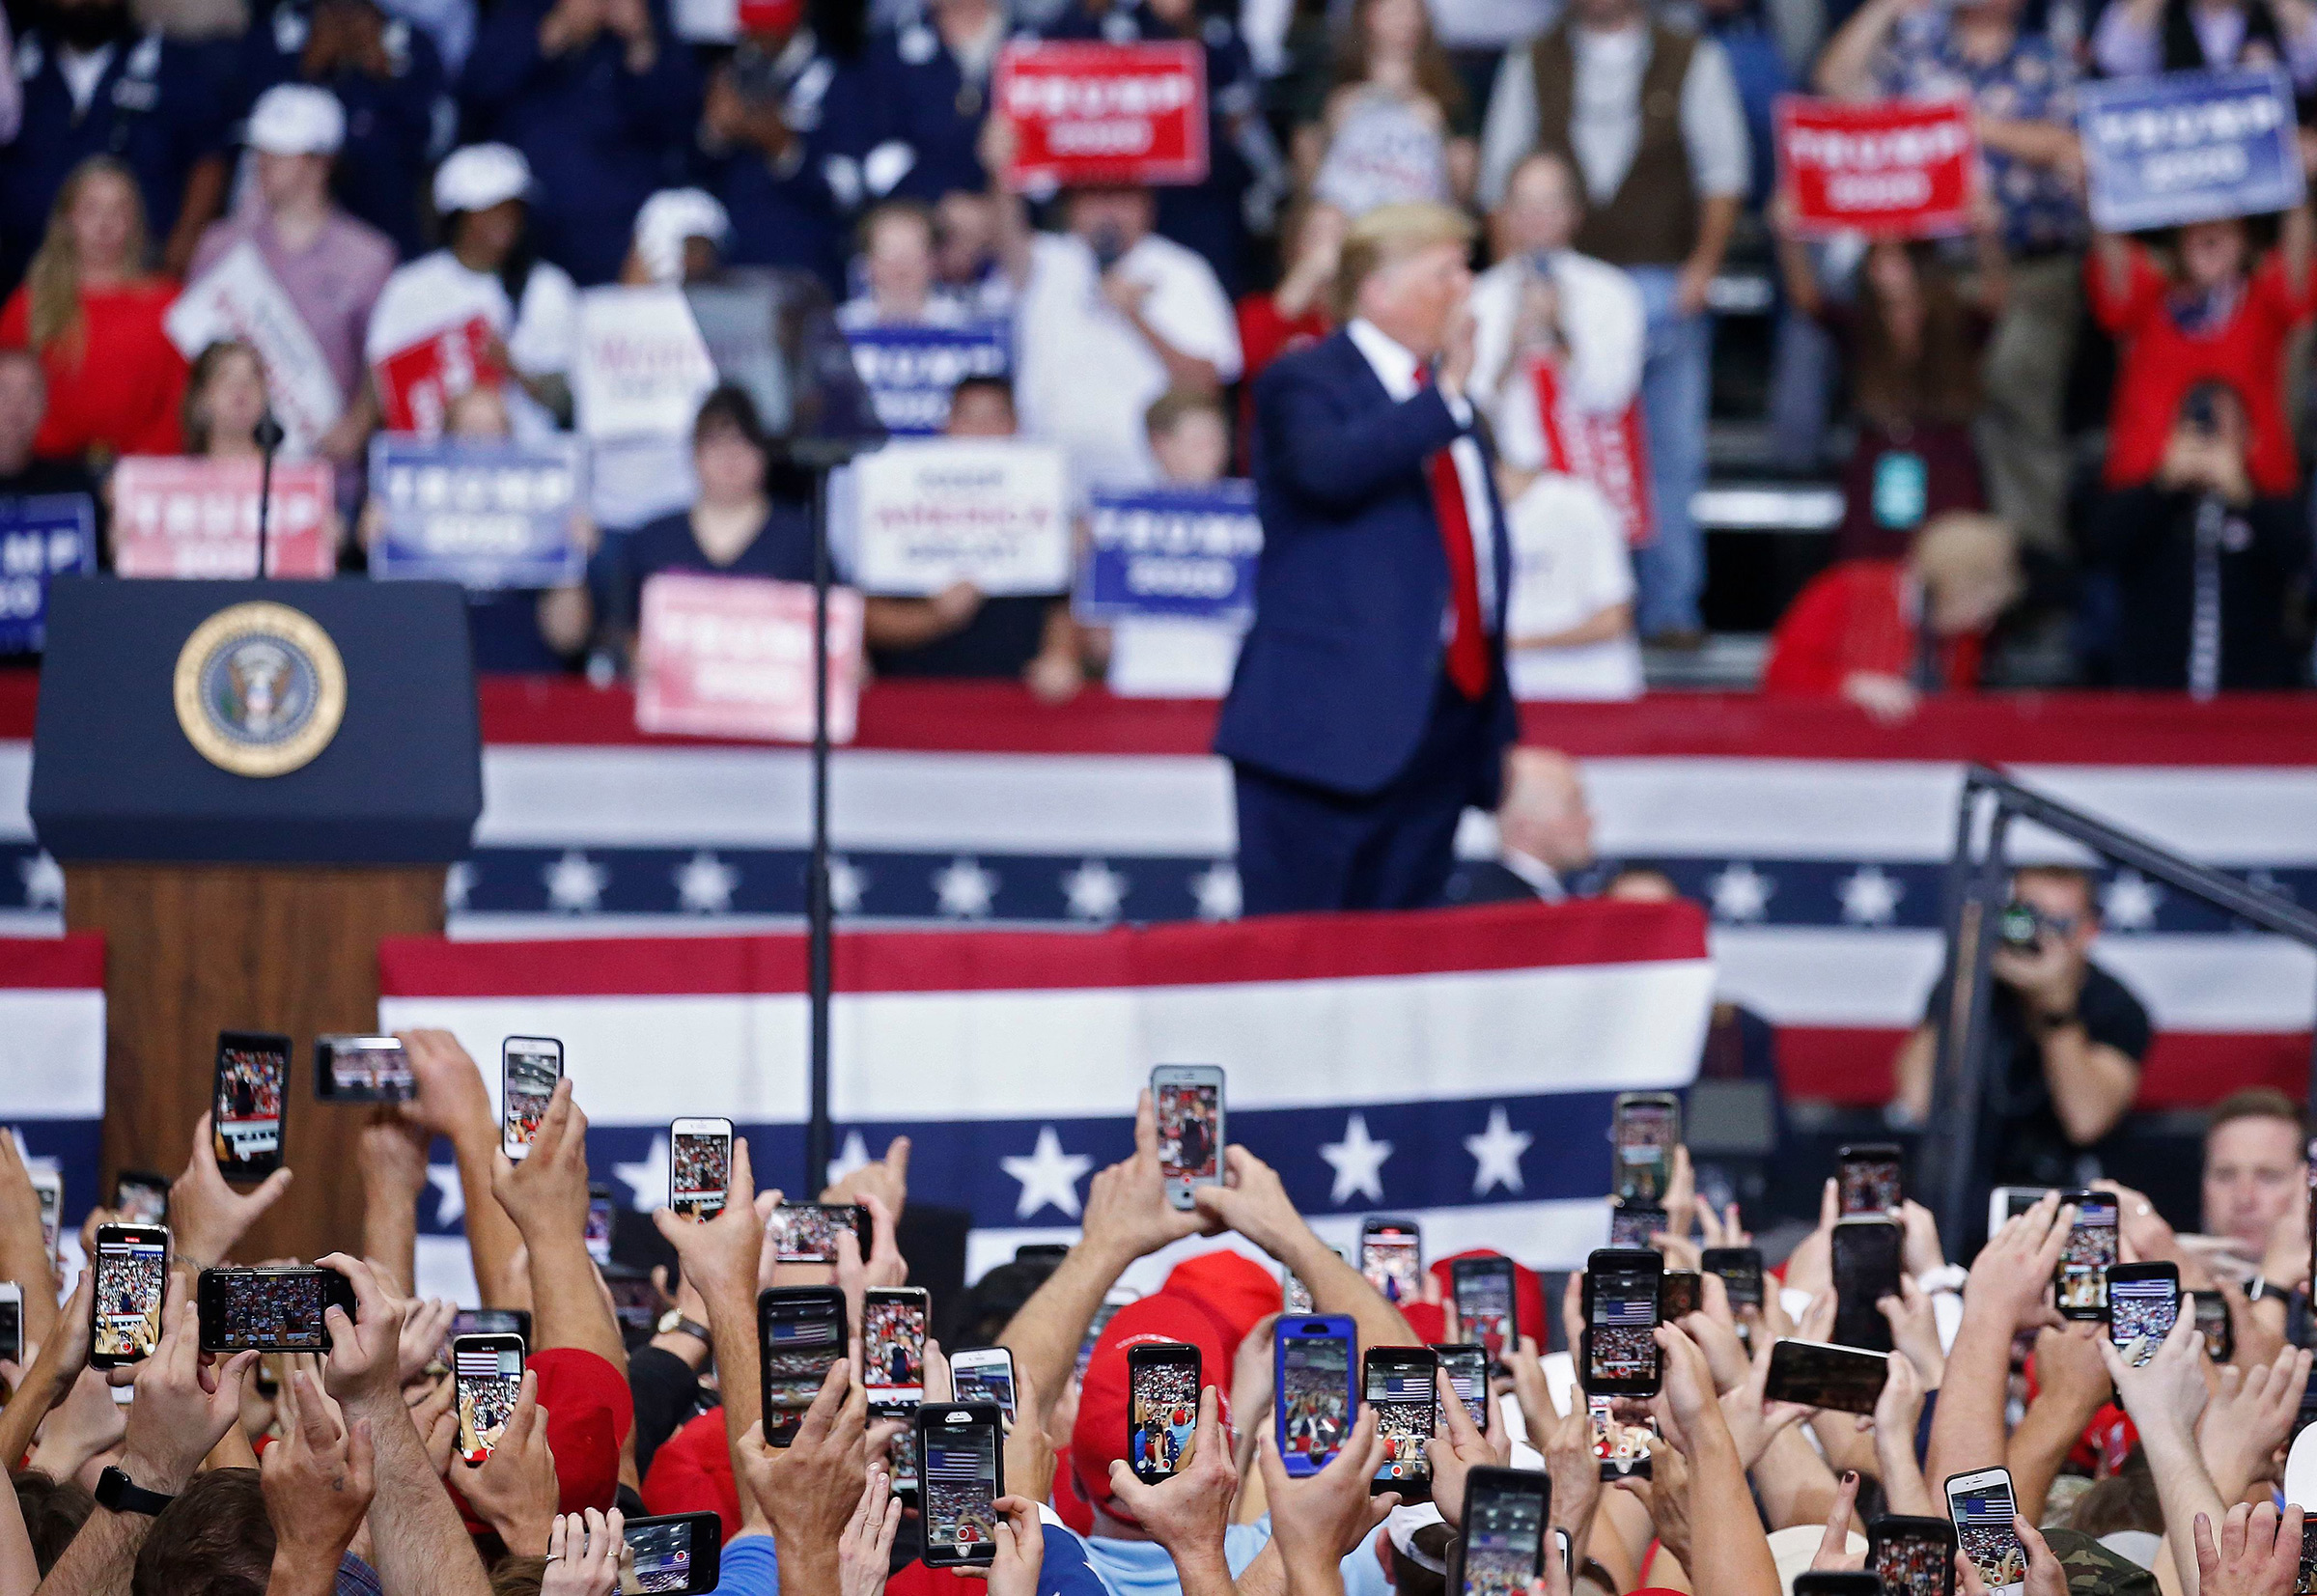 People use their phones to photograph President Donald Trump as he addresses a rally in Monroe,La., on Nov.6